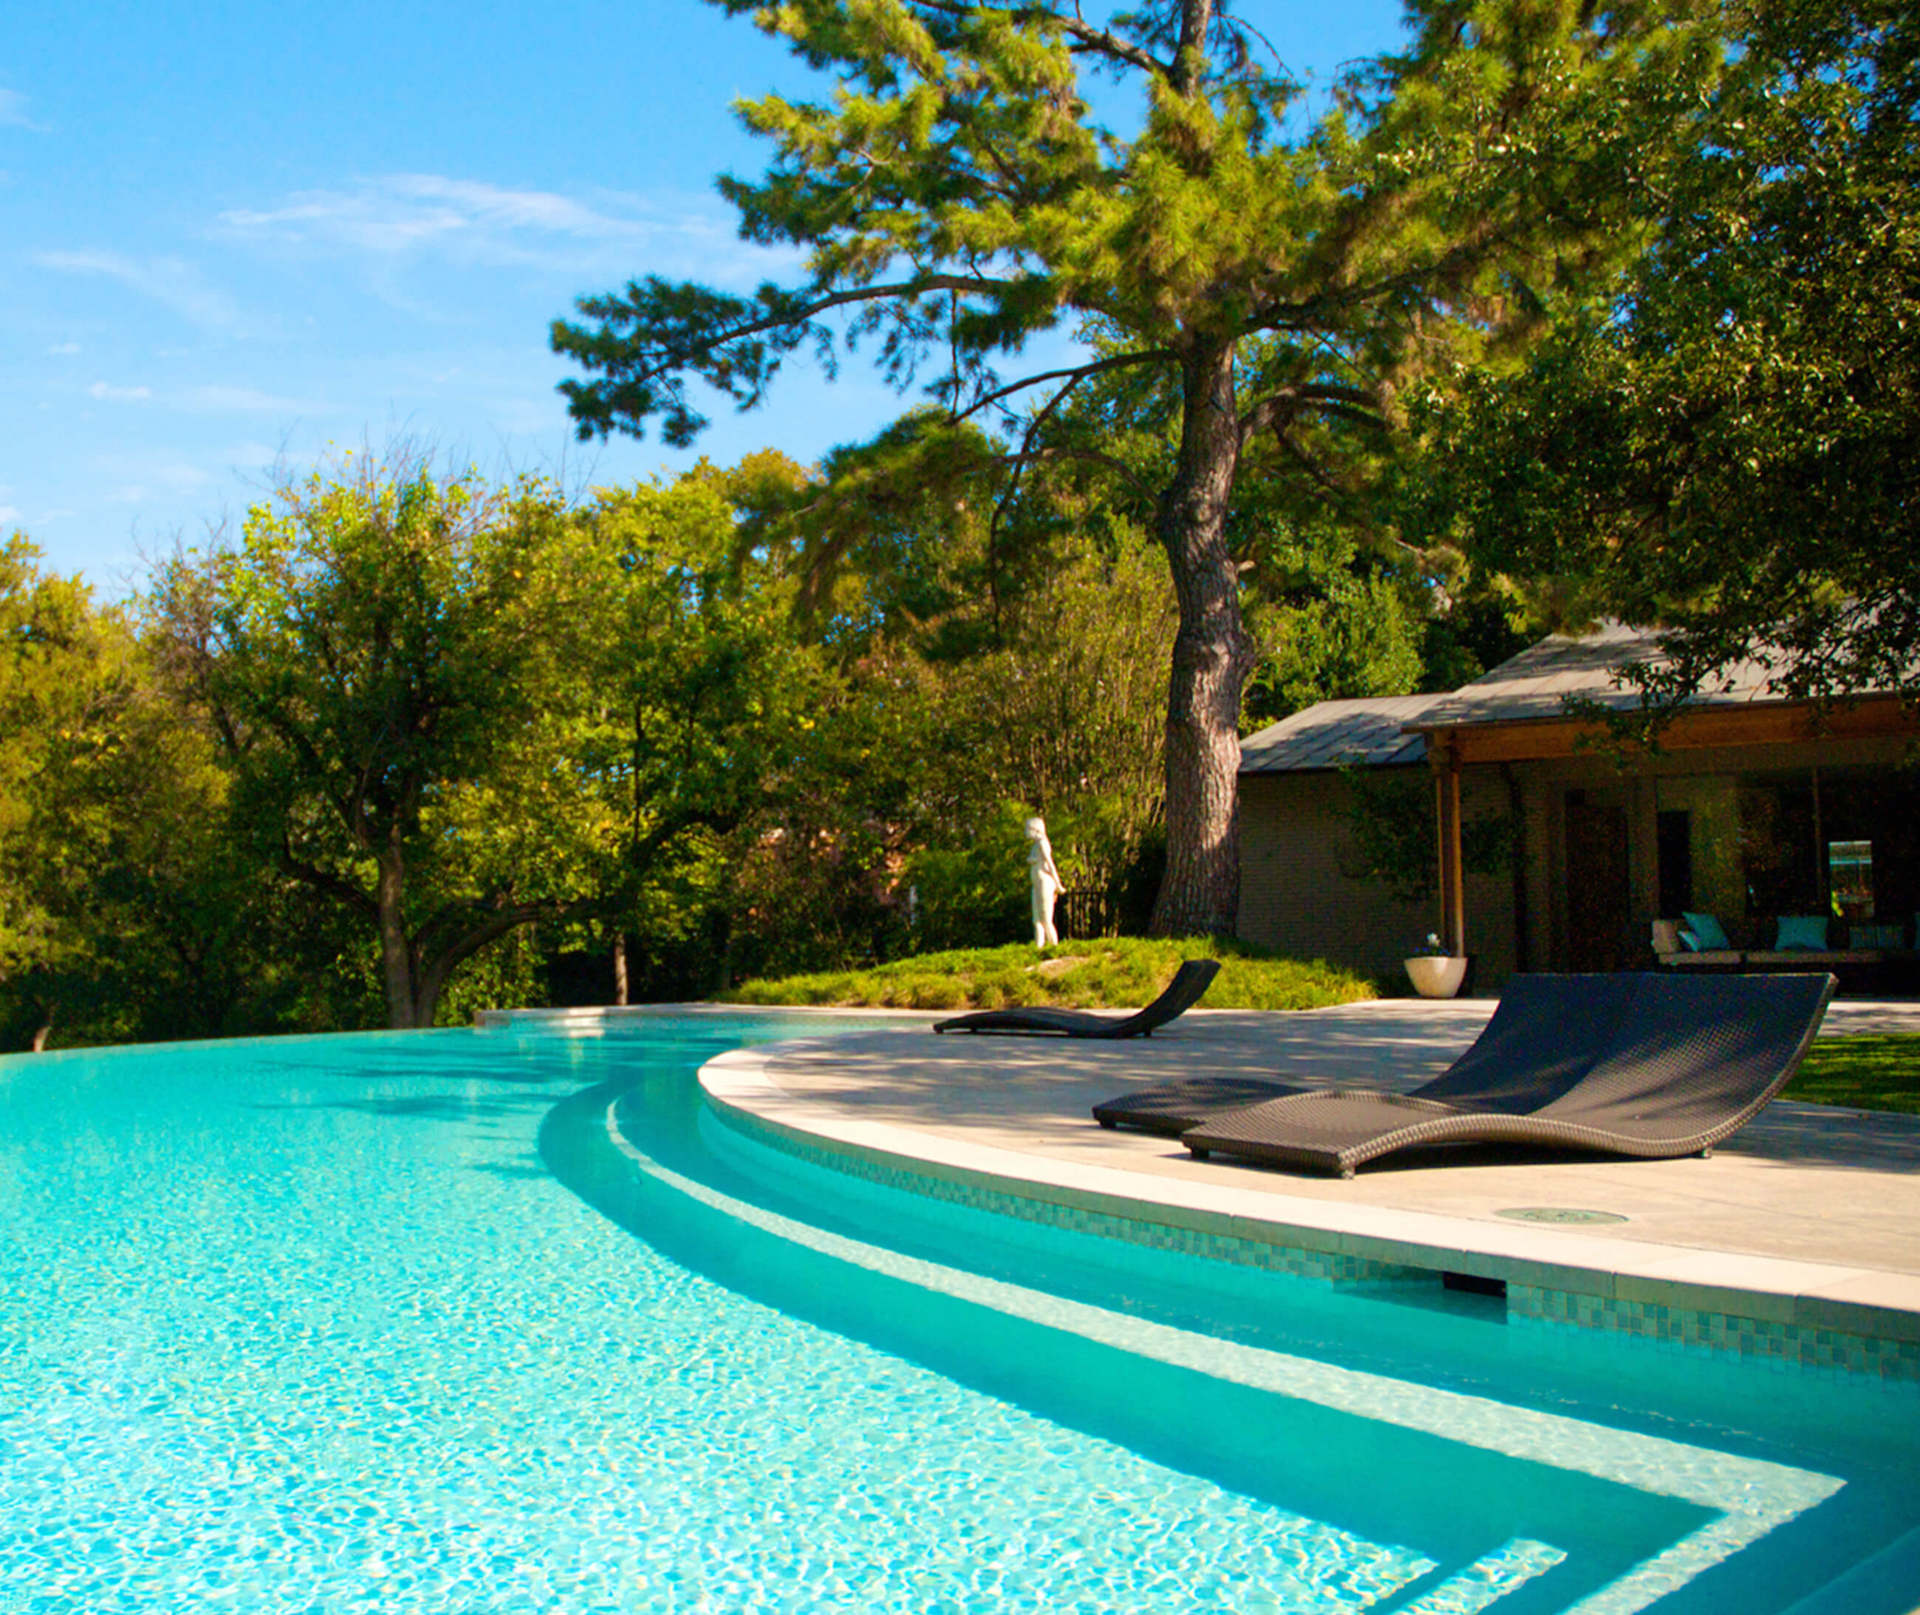 <p>The stifling August heat demands more swim time, and we're all in favor of pool fun in the sun. So,…</p>